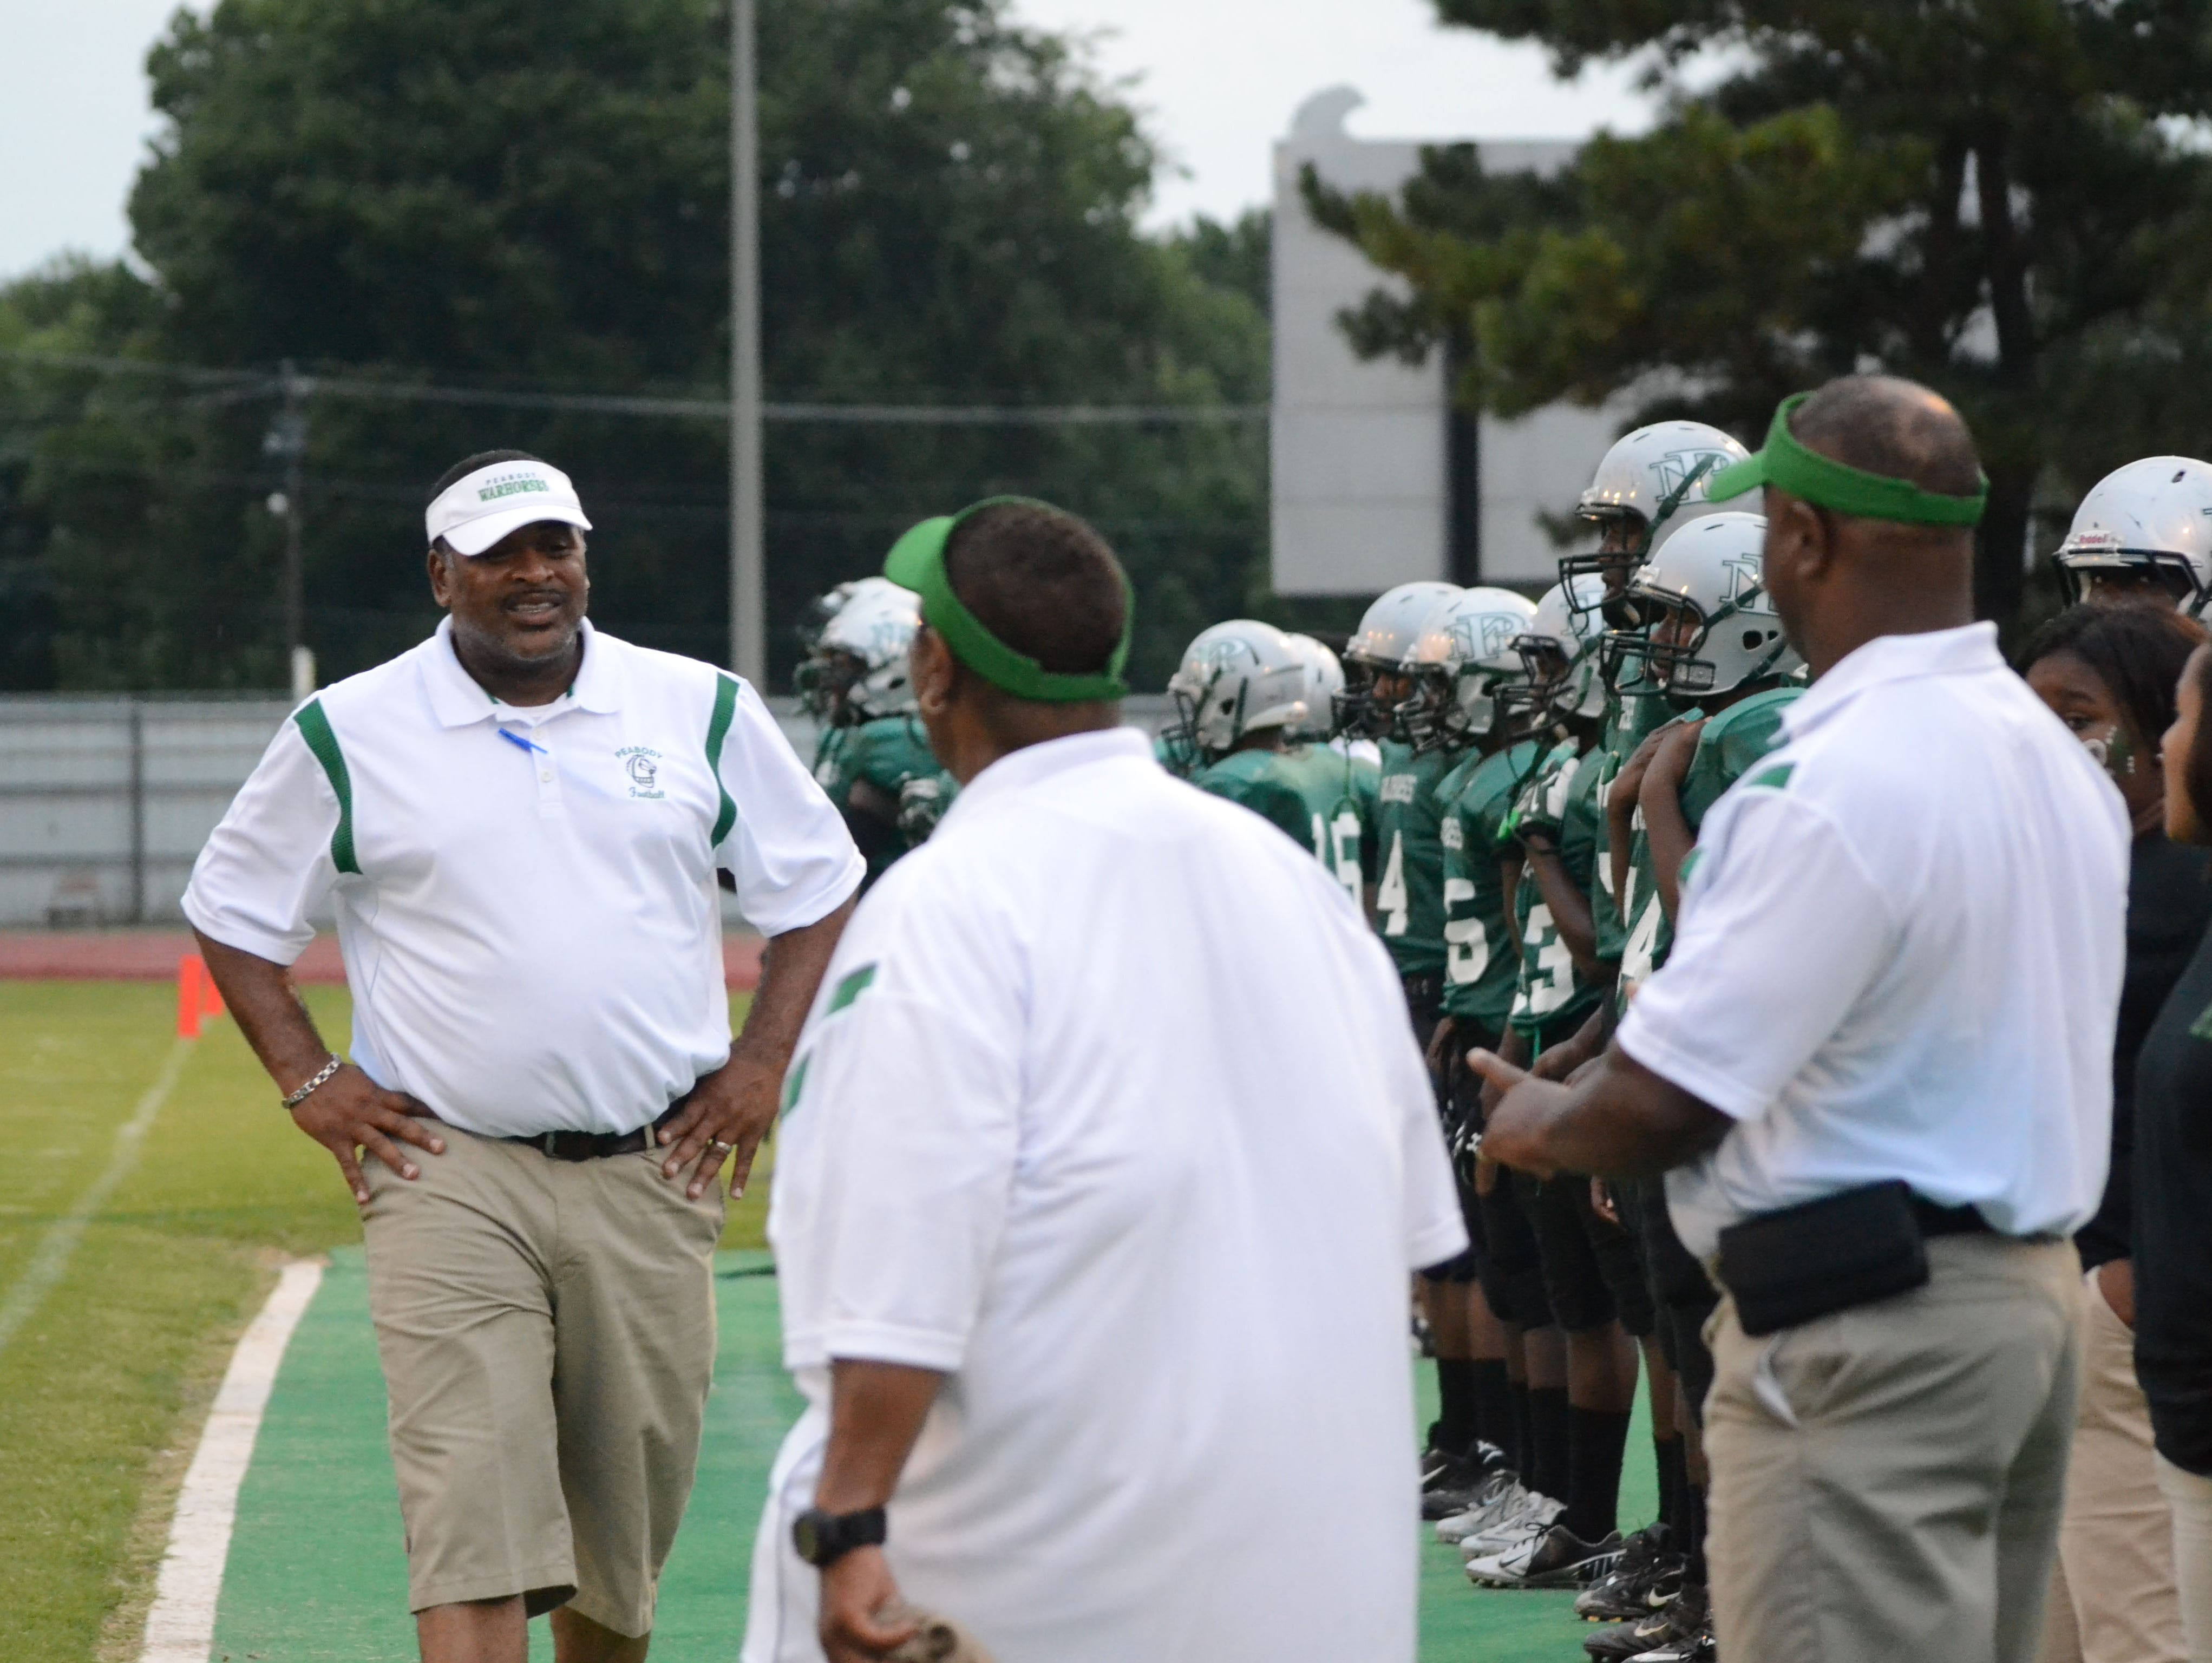 Toriano Williams (left), who was the All-Cenla Football Coach of the Year after leading Peabody to its first playoff win in five decades last year, was fired Wednesday after just one season with the Warhorses.